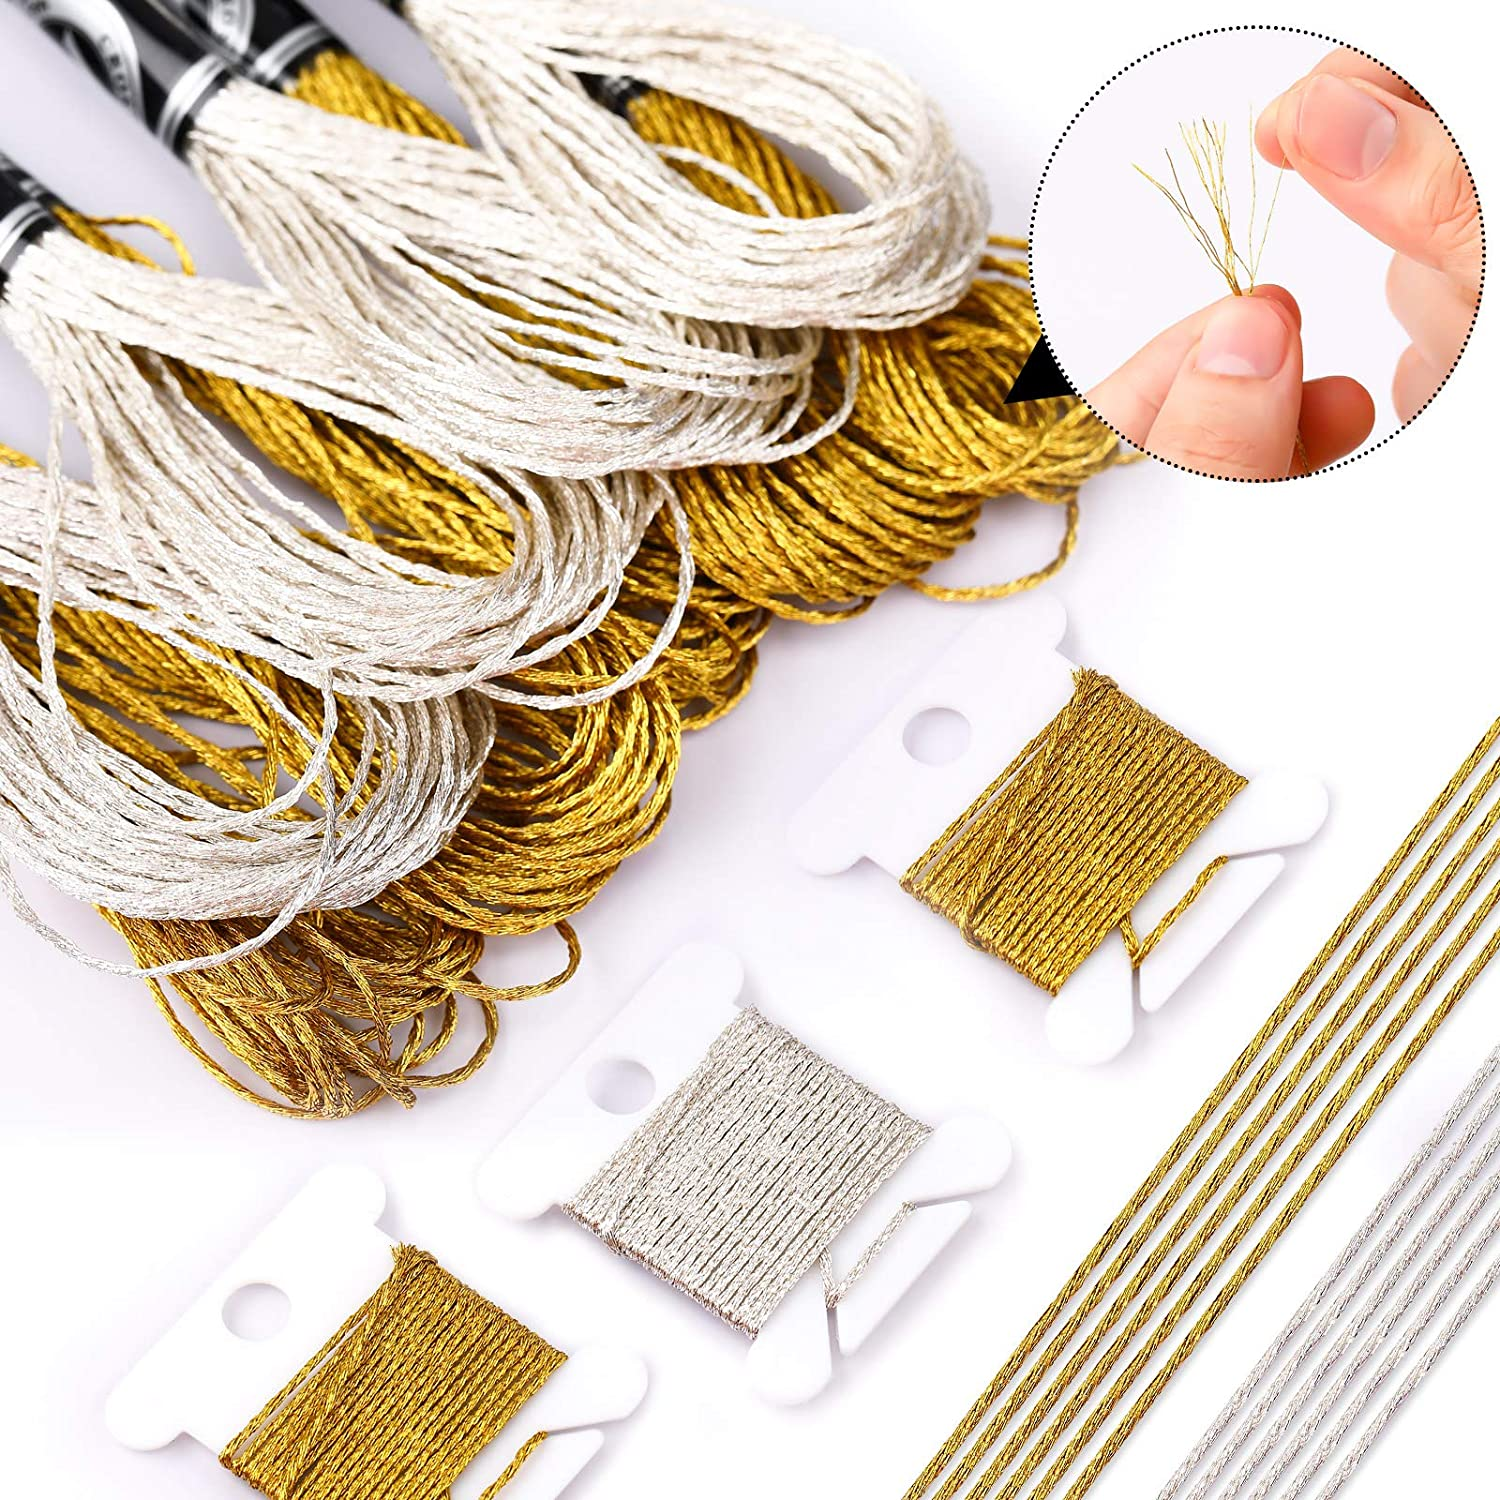 12 Skeins Metallic Embroidery Threads Glitter Embroidery Floss Cross Stitch Threads 12 Pieces Floss Bobbins 2 Embroidery Needles with Needle Threader for Floss-Cross Stitch Craft Needlework